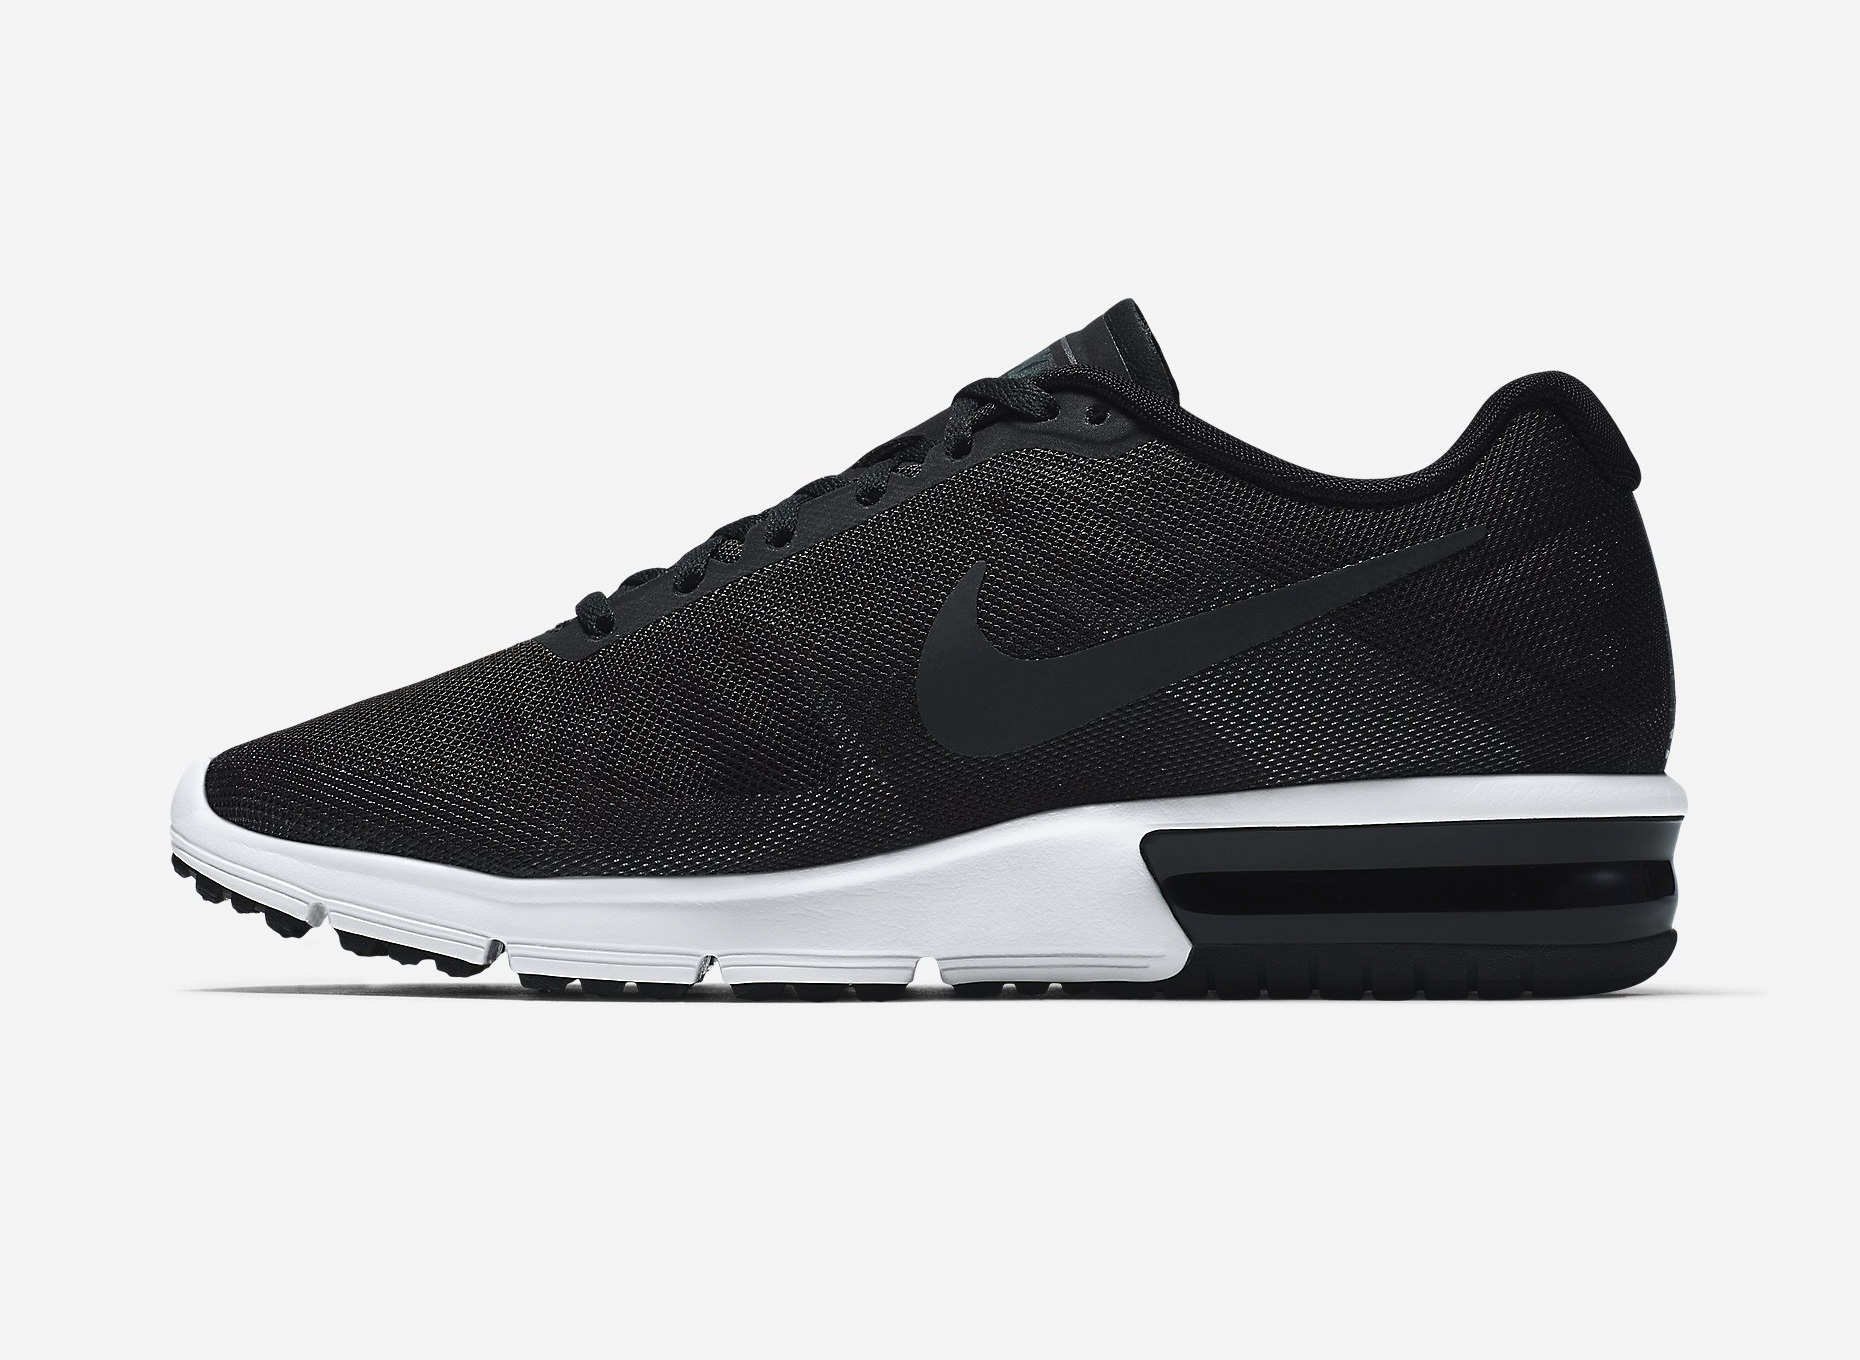 719916-008-Nike-Air-Max-Sequent-Black-White-02